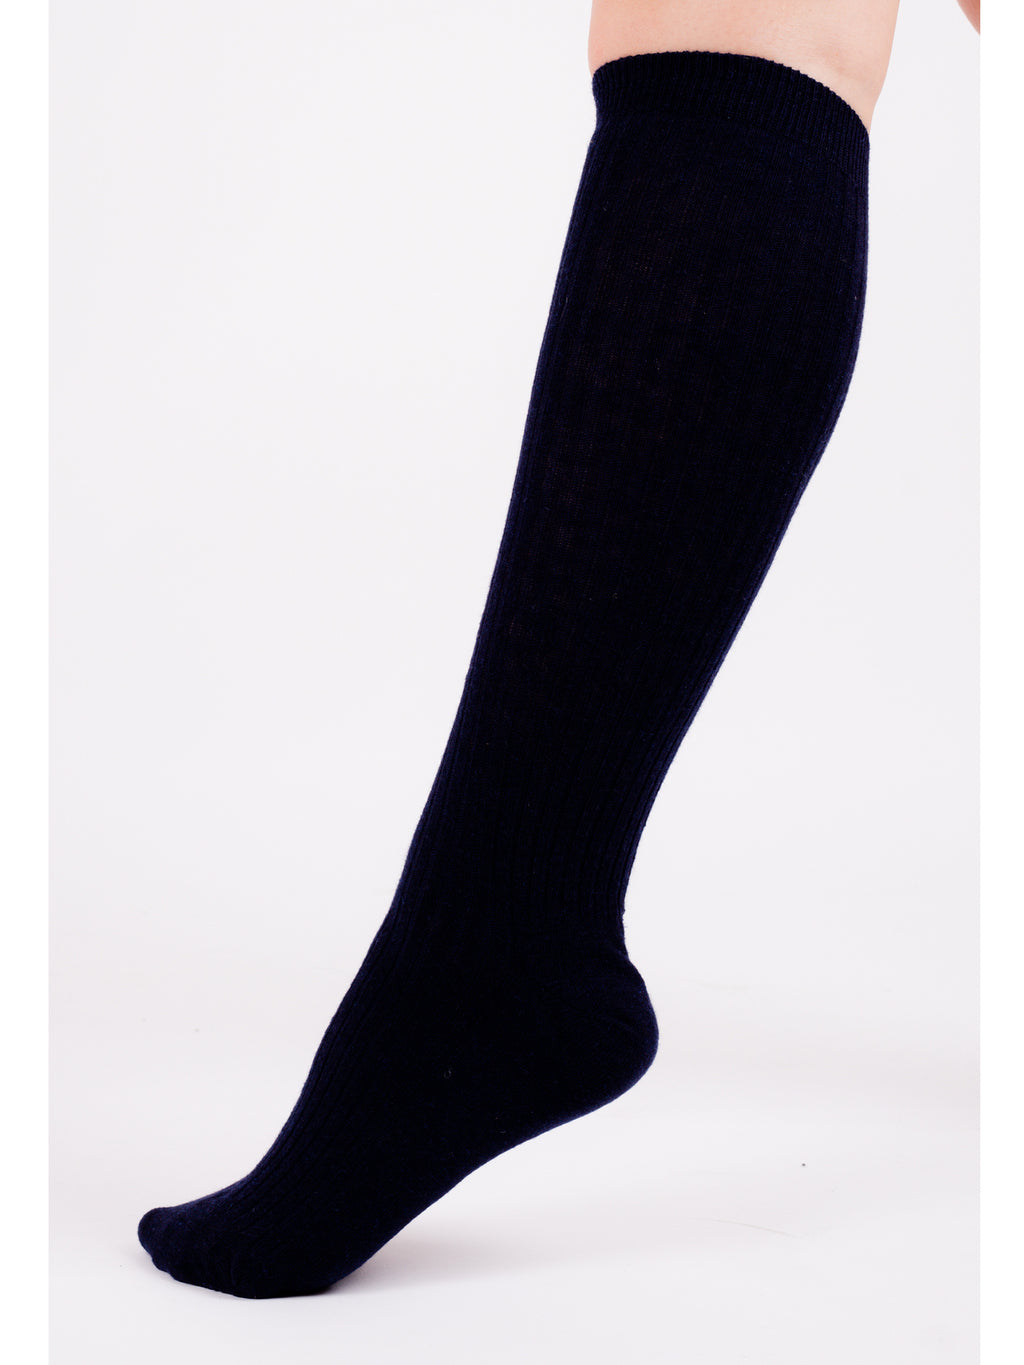 f2e5b786ef3 Navy Knee School Socks Navy Knee School Socks